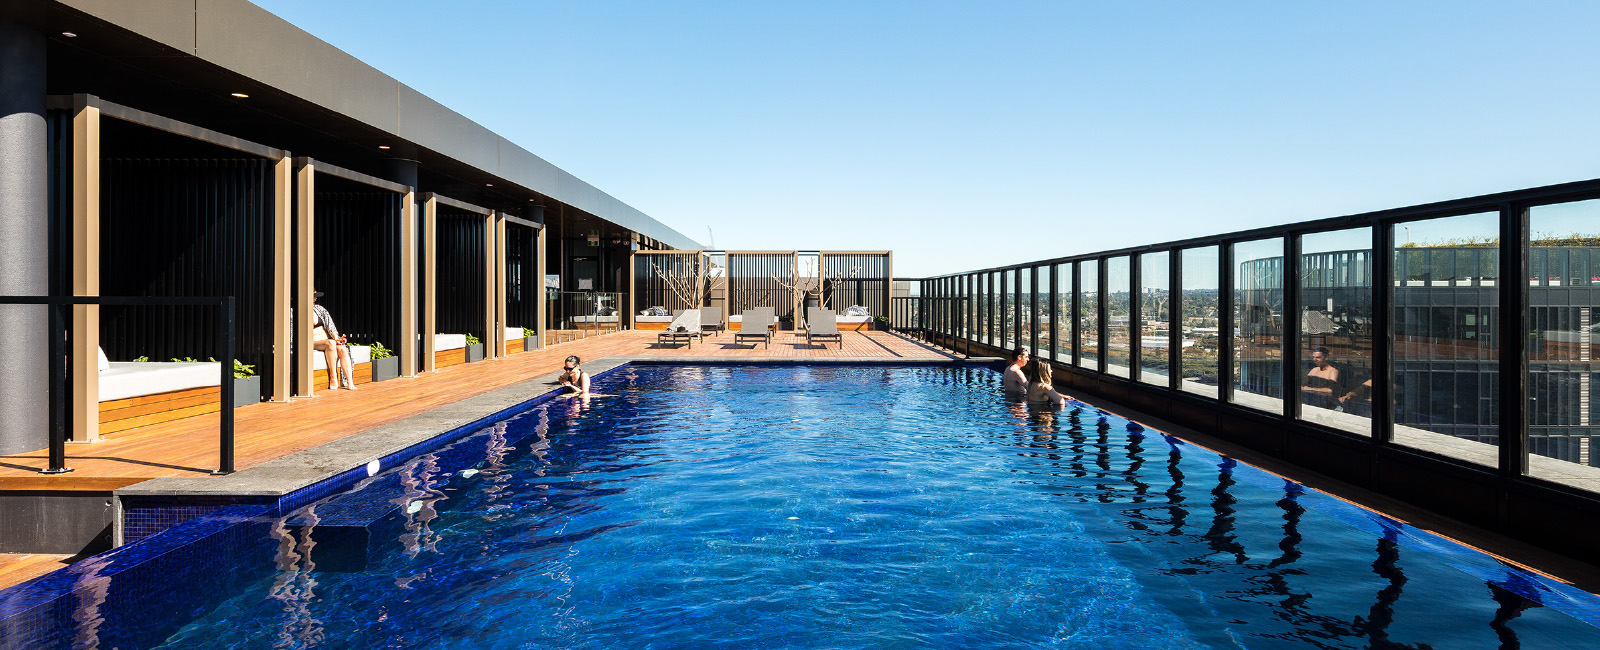 Parkview | Constructions   Developments   Projects   Interiors